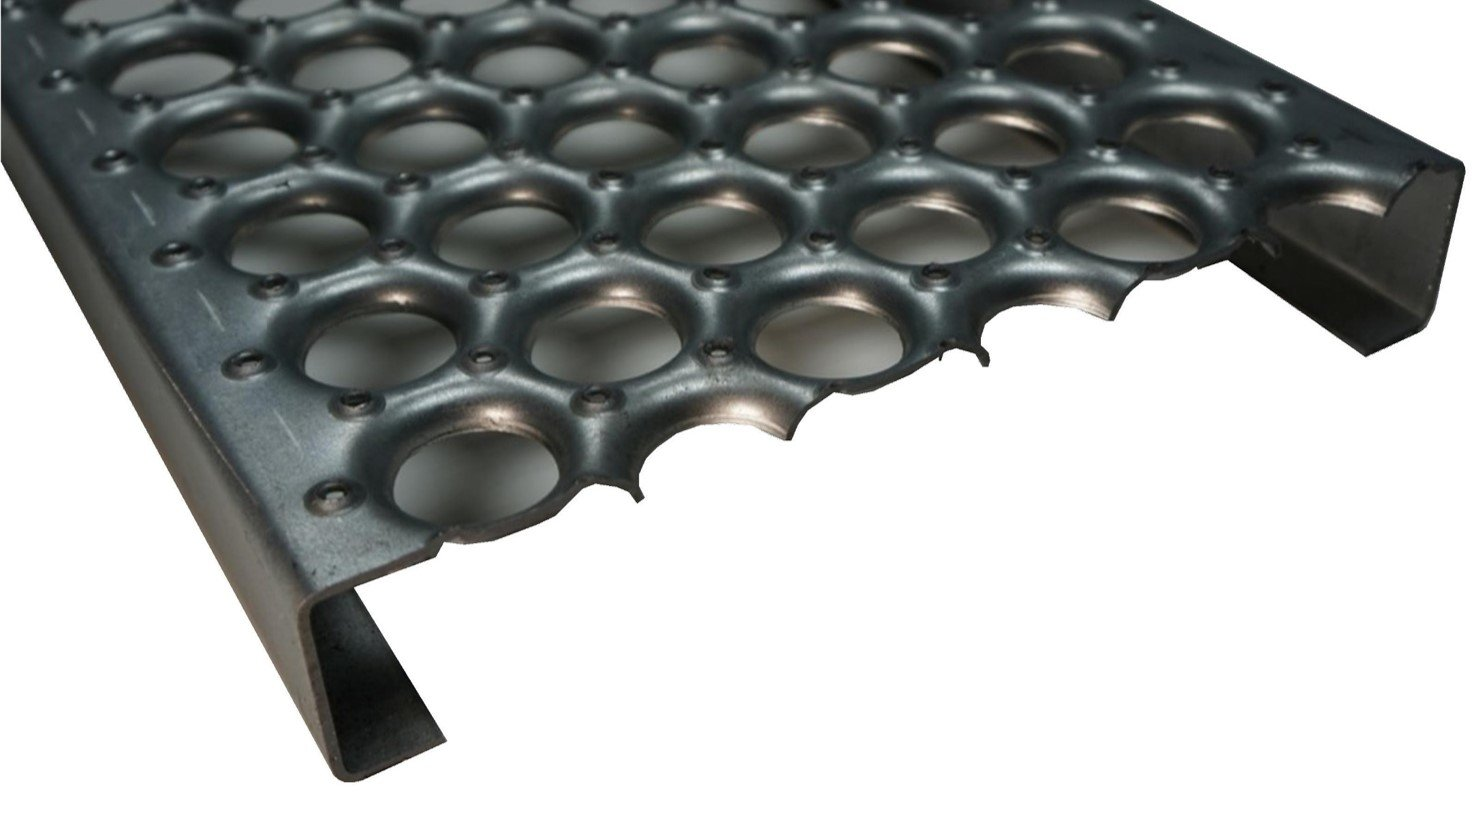 61G13122-48 Perf-O-Grip Channel 13 Gauge Pregalvanized Steel Plank Safety Grating, 48 Length x 12'' Width x 2'' Depth by Small Parts